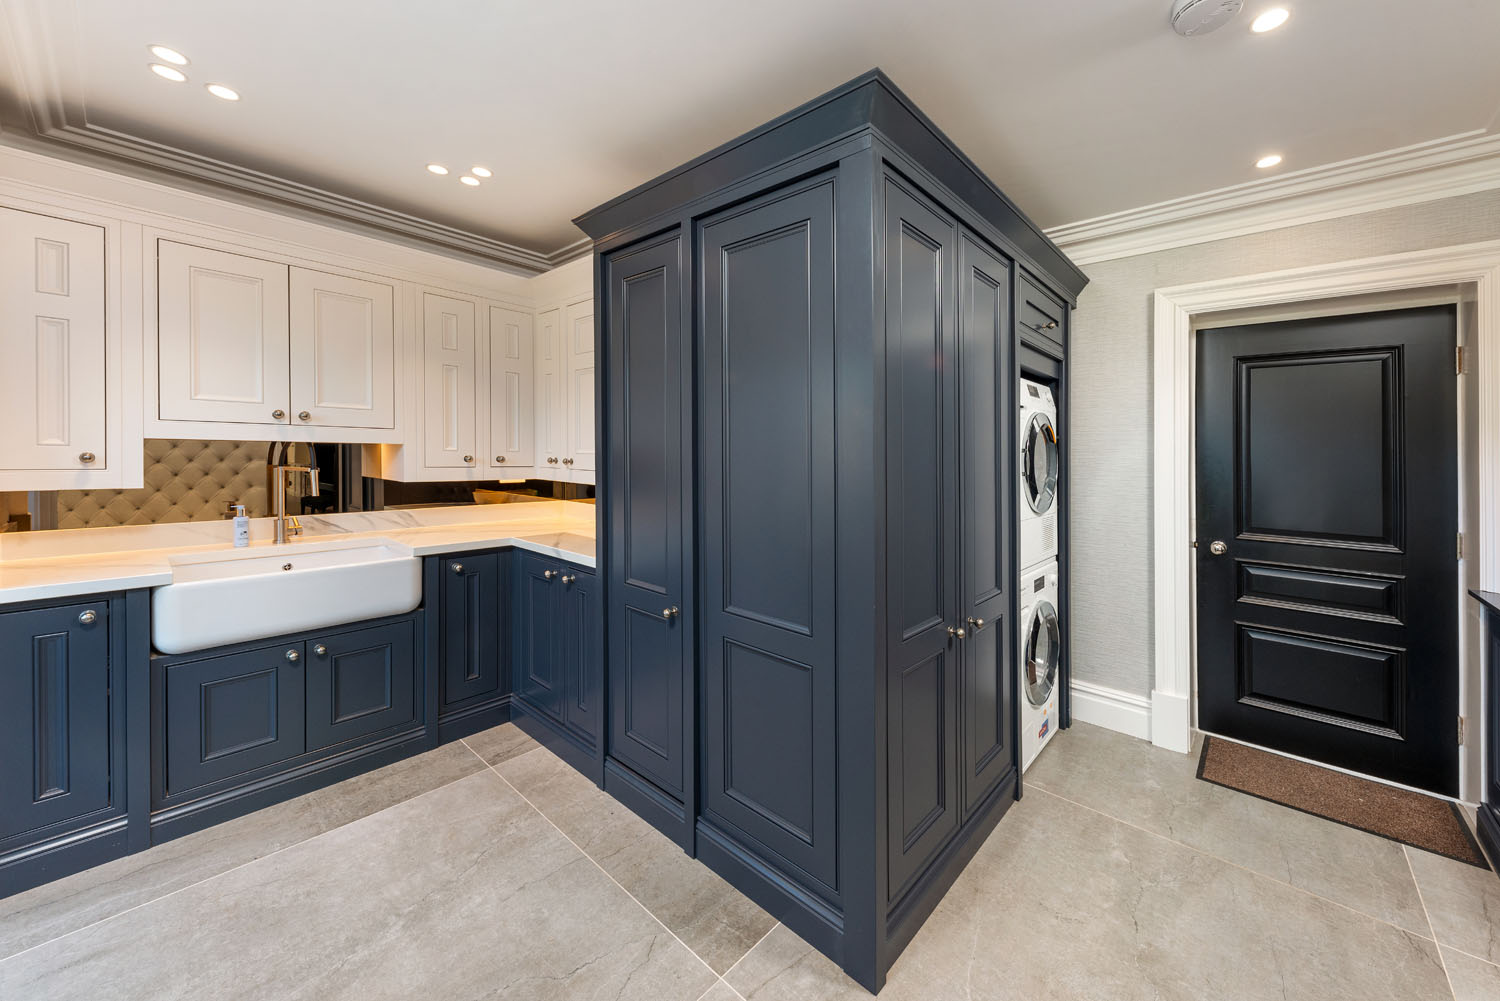 Image of 16 in Dekton Flooring and Kitchen Worksurfaces Add Timeless Elegance to This Classic Family Home - Cosentino